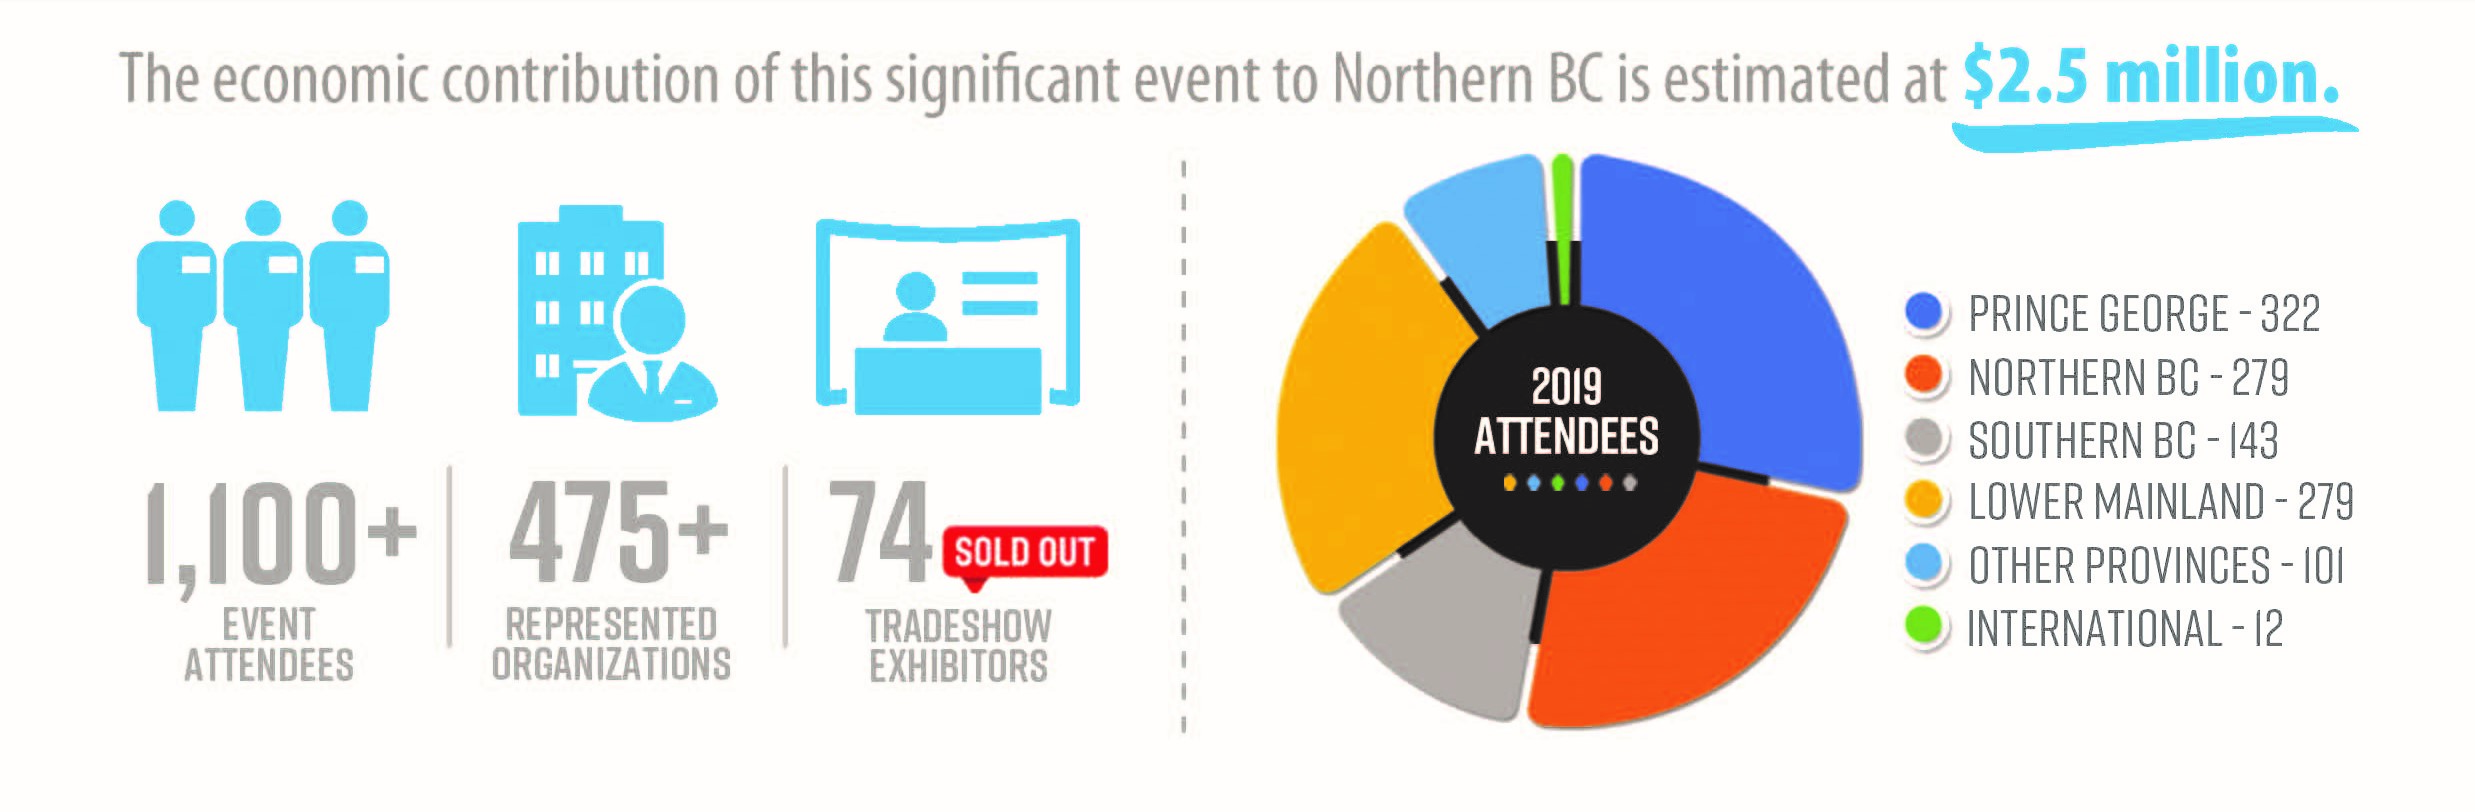 The econonmic contribution of this significant event to Northern BC is estimated at $2.5 million.